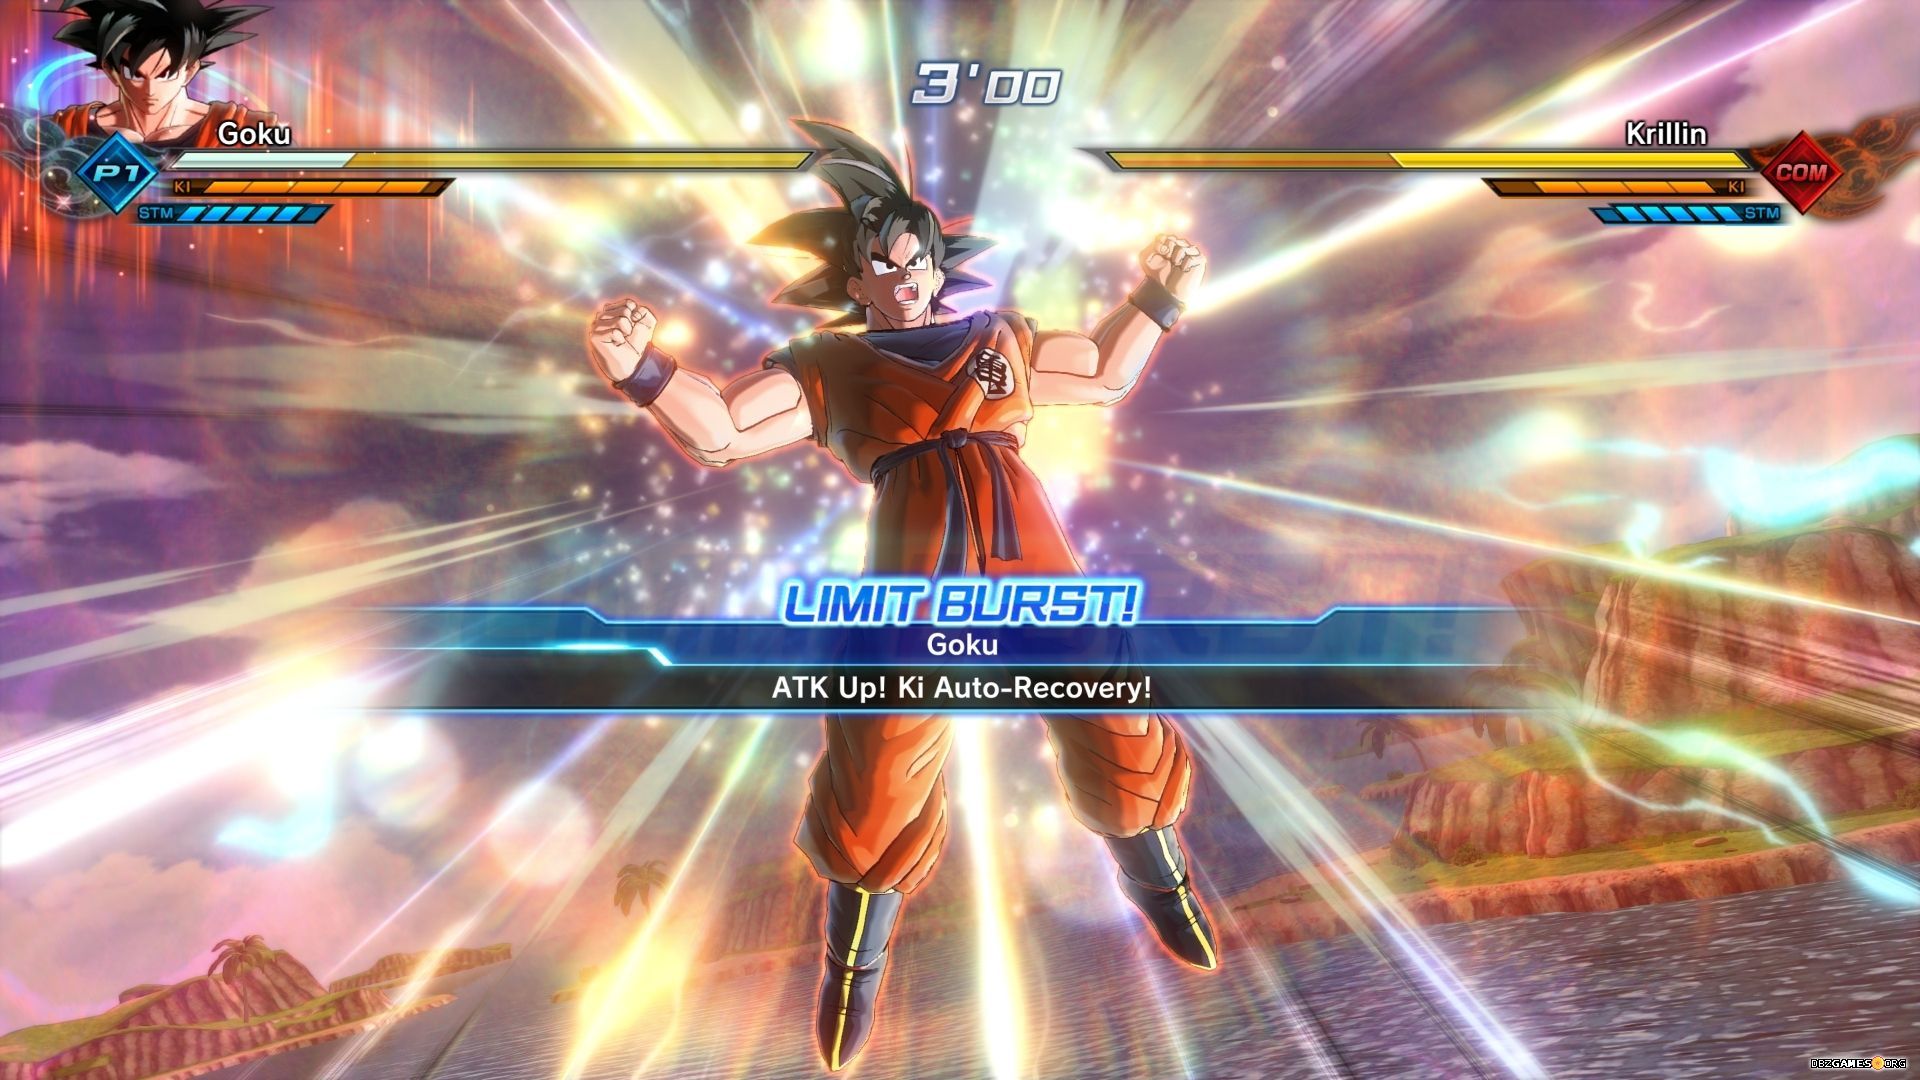 Play Dragon Ball Xenoverse 2 for Free With the New Lite